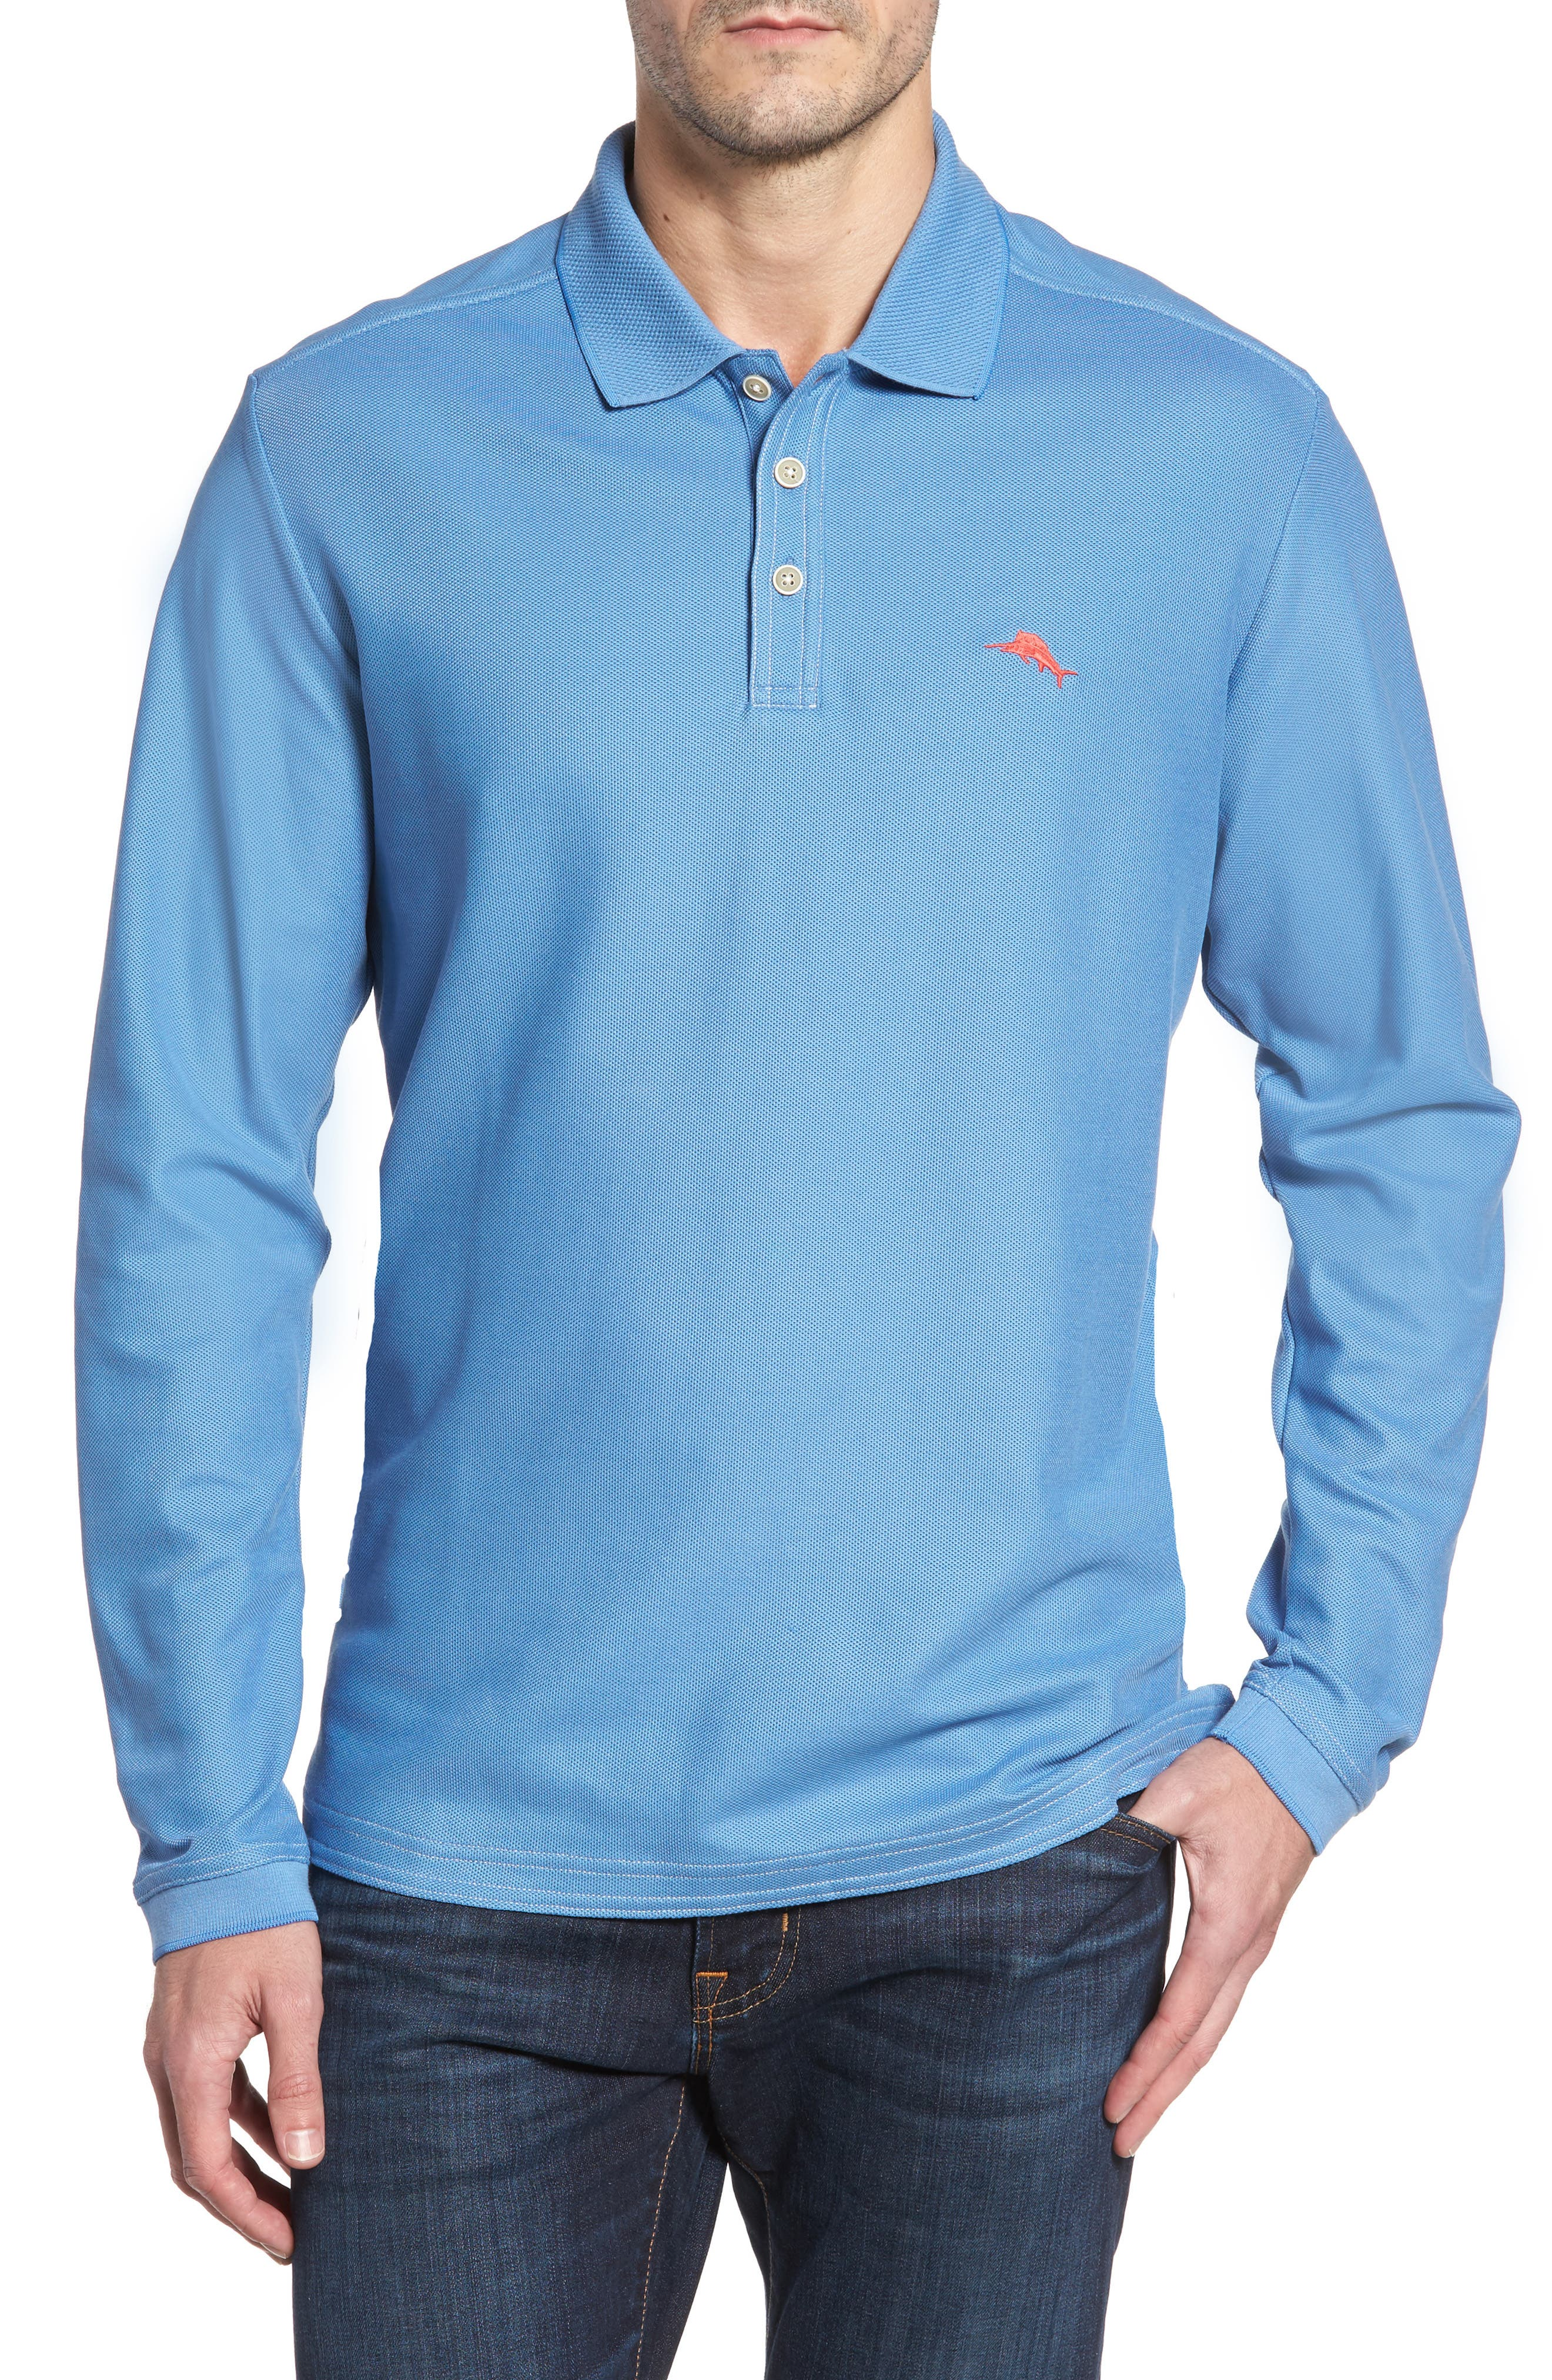 Main Image - Tommy Bahama Emfielder Long Sleeve Polo